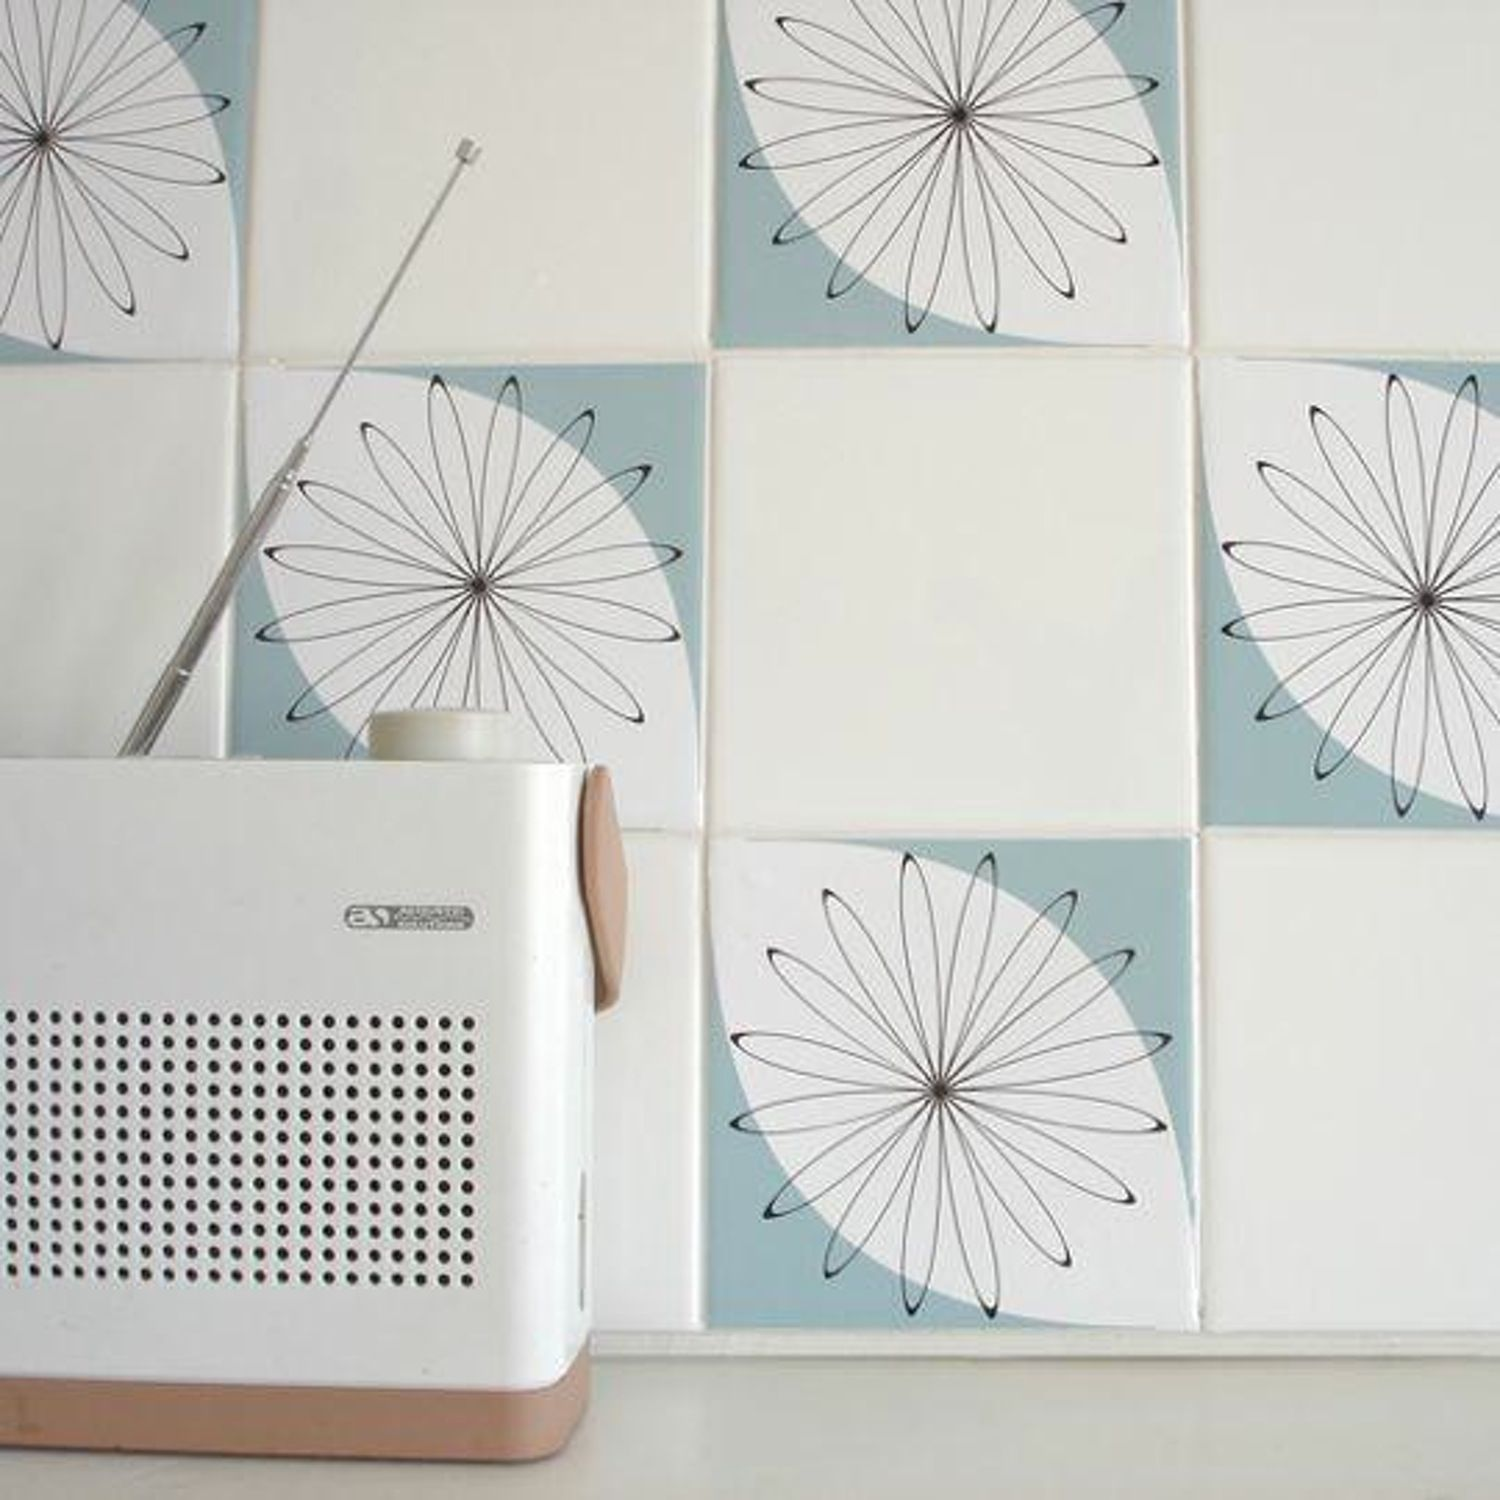 Tile Tattoos from Mibo | Rental kitchen, Tile decals and Apartment ideas